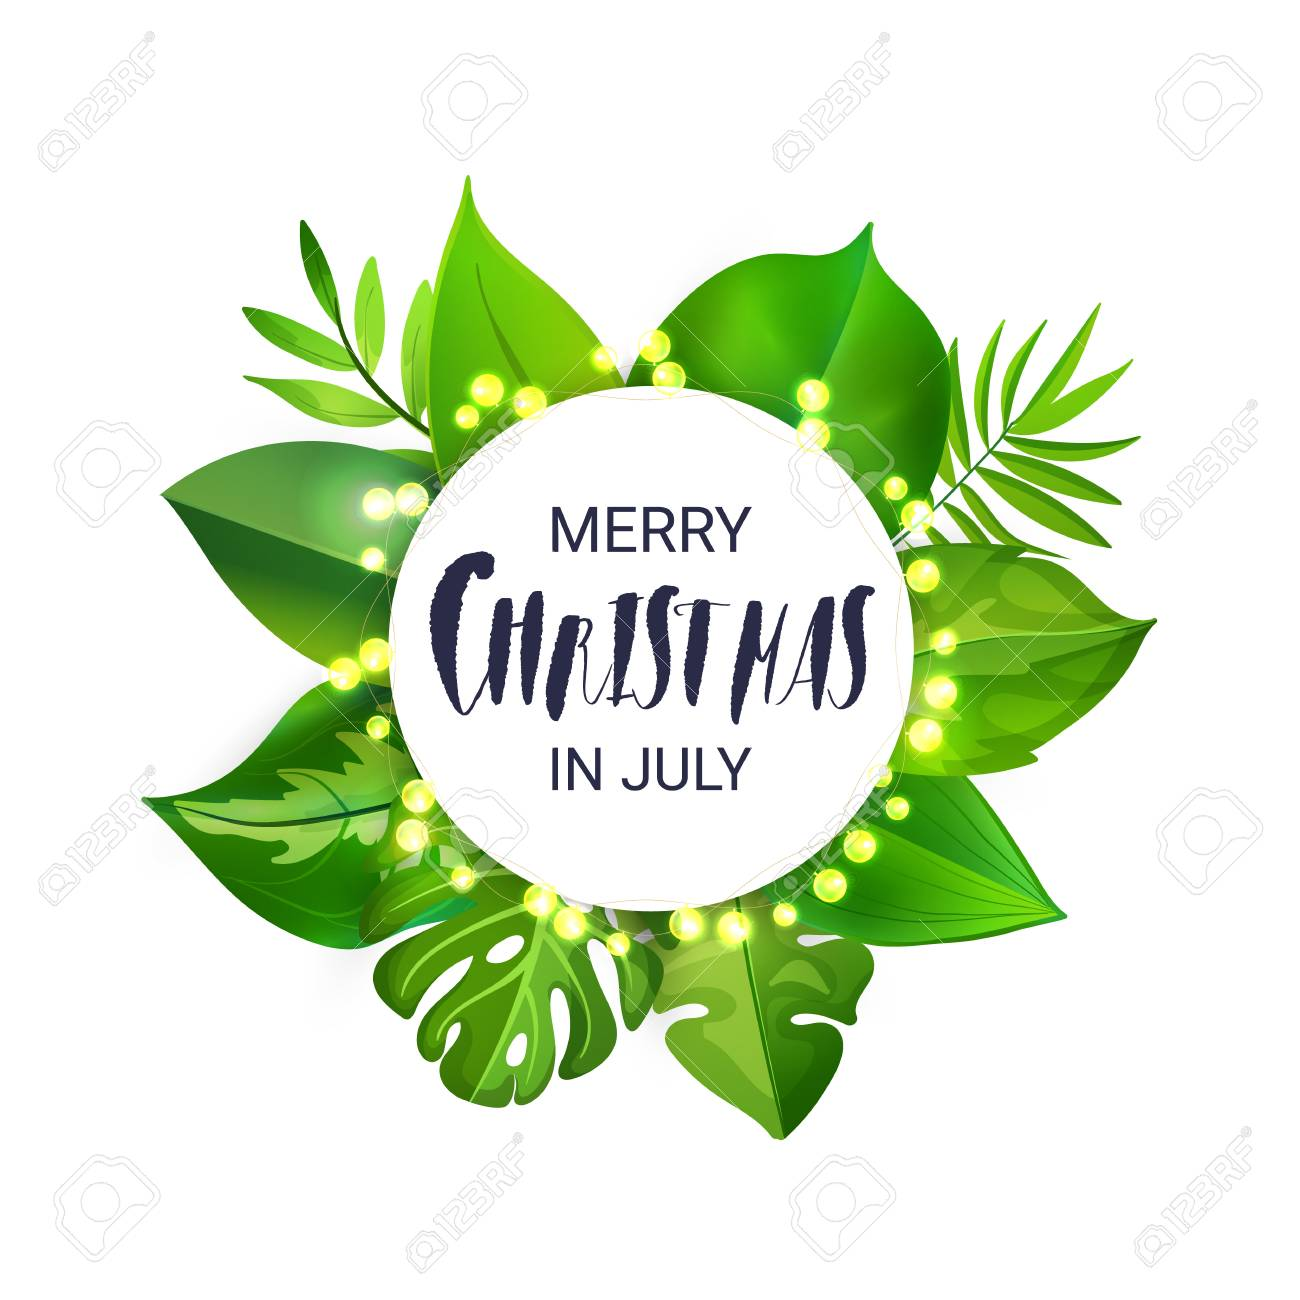 Merry Christmas In July Images.Merry Christmas In July Floral Banner With Luminous Garland And